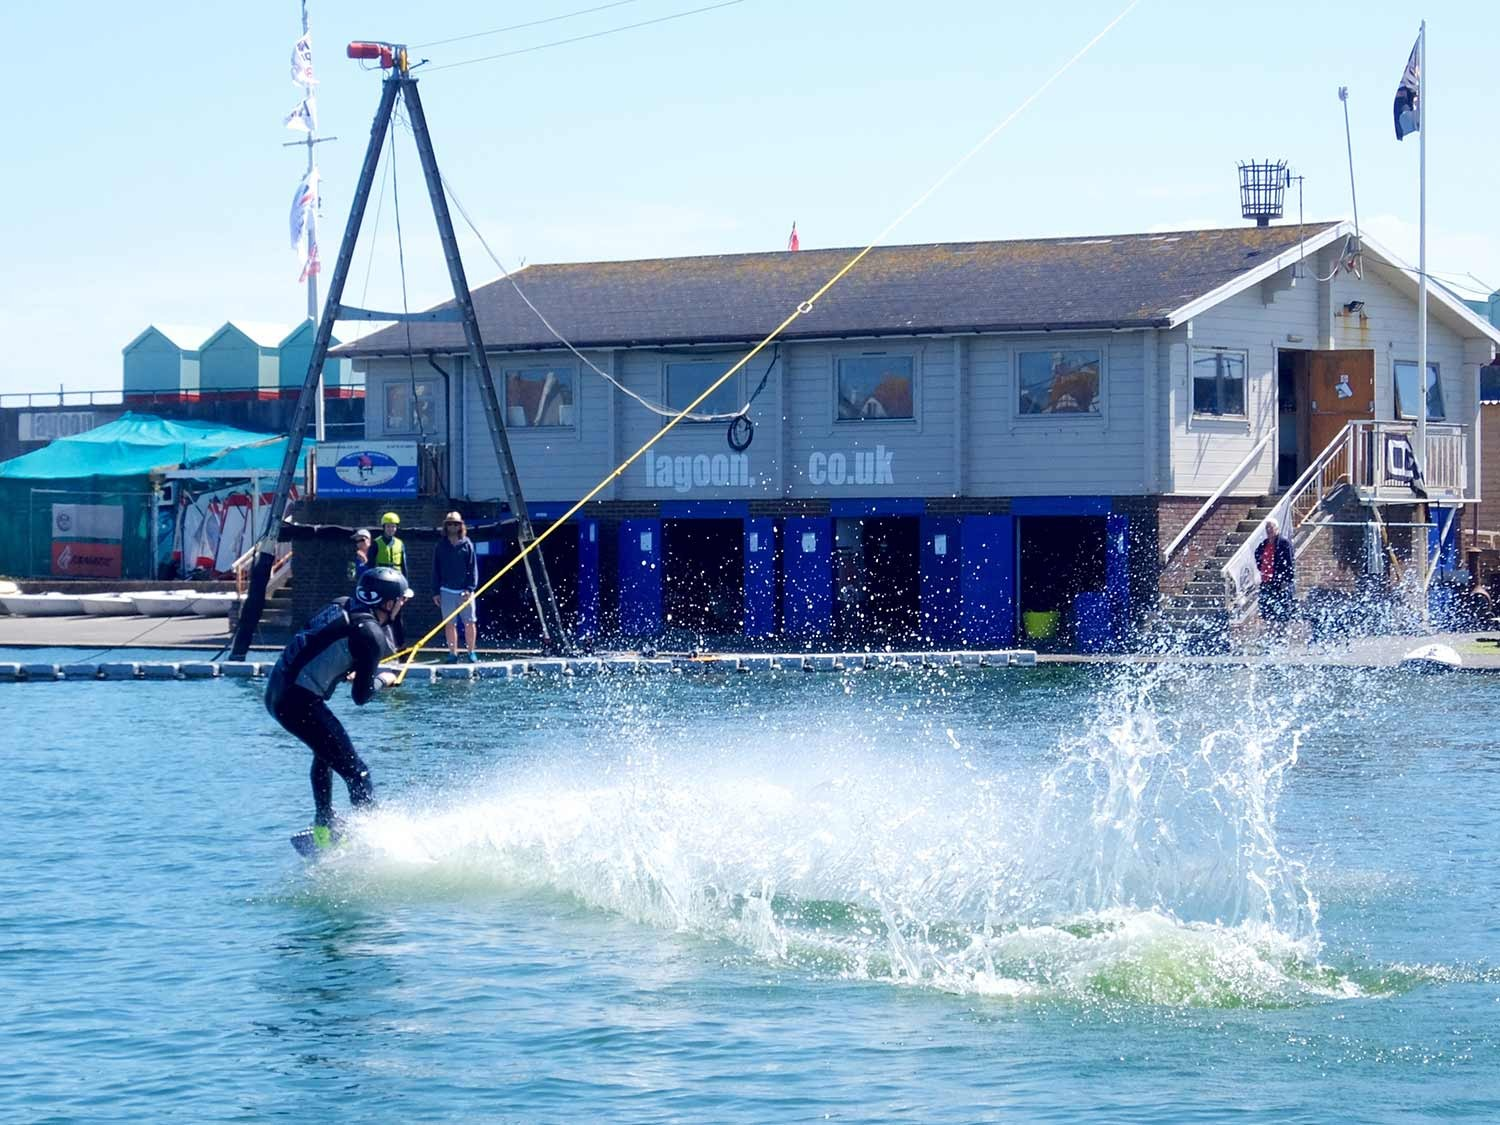 wakeboard coaching hove lagoon brighton